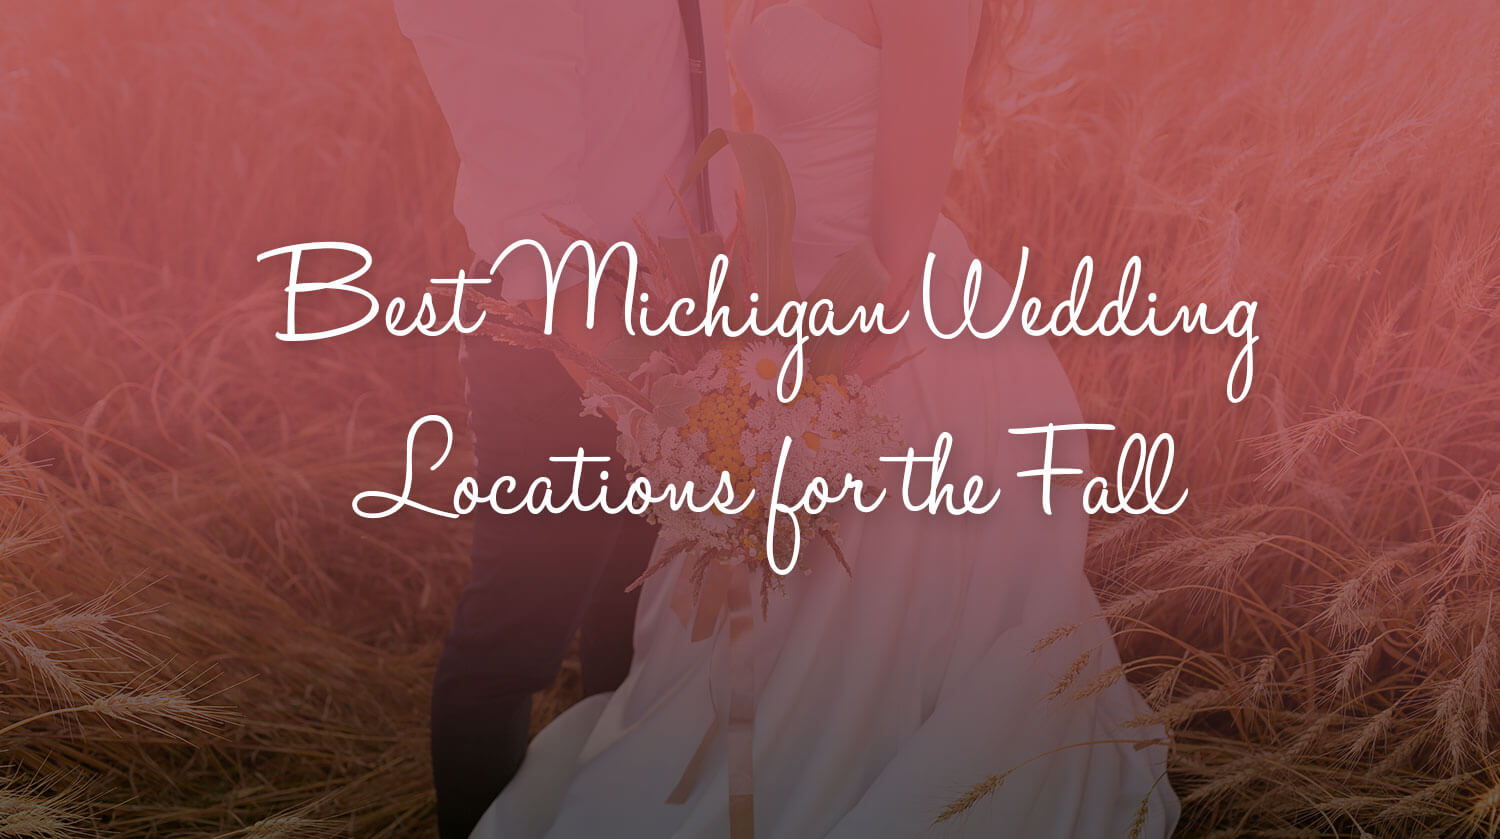 Best Michigan Wedding Locations for the Fall